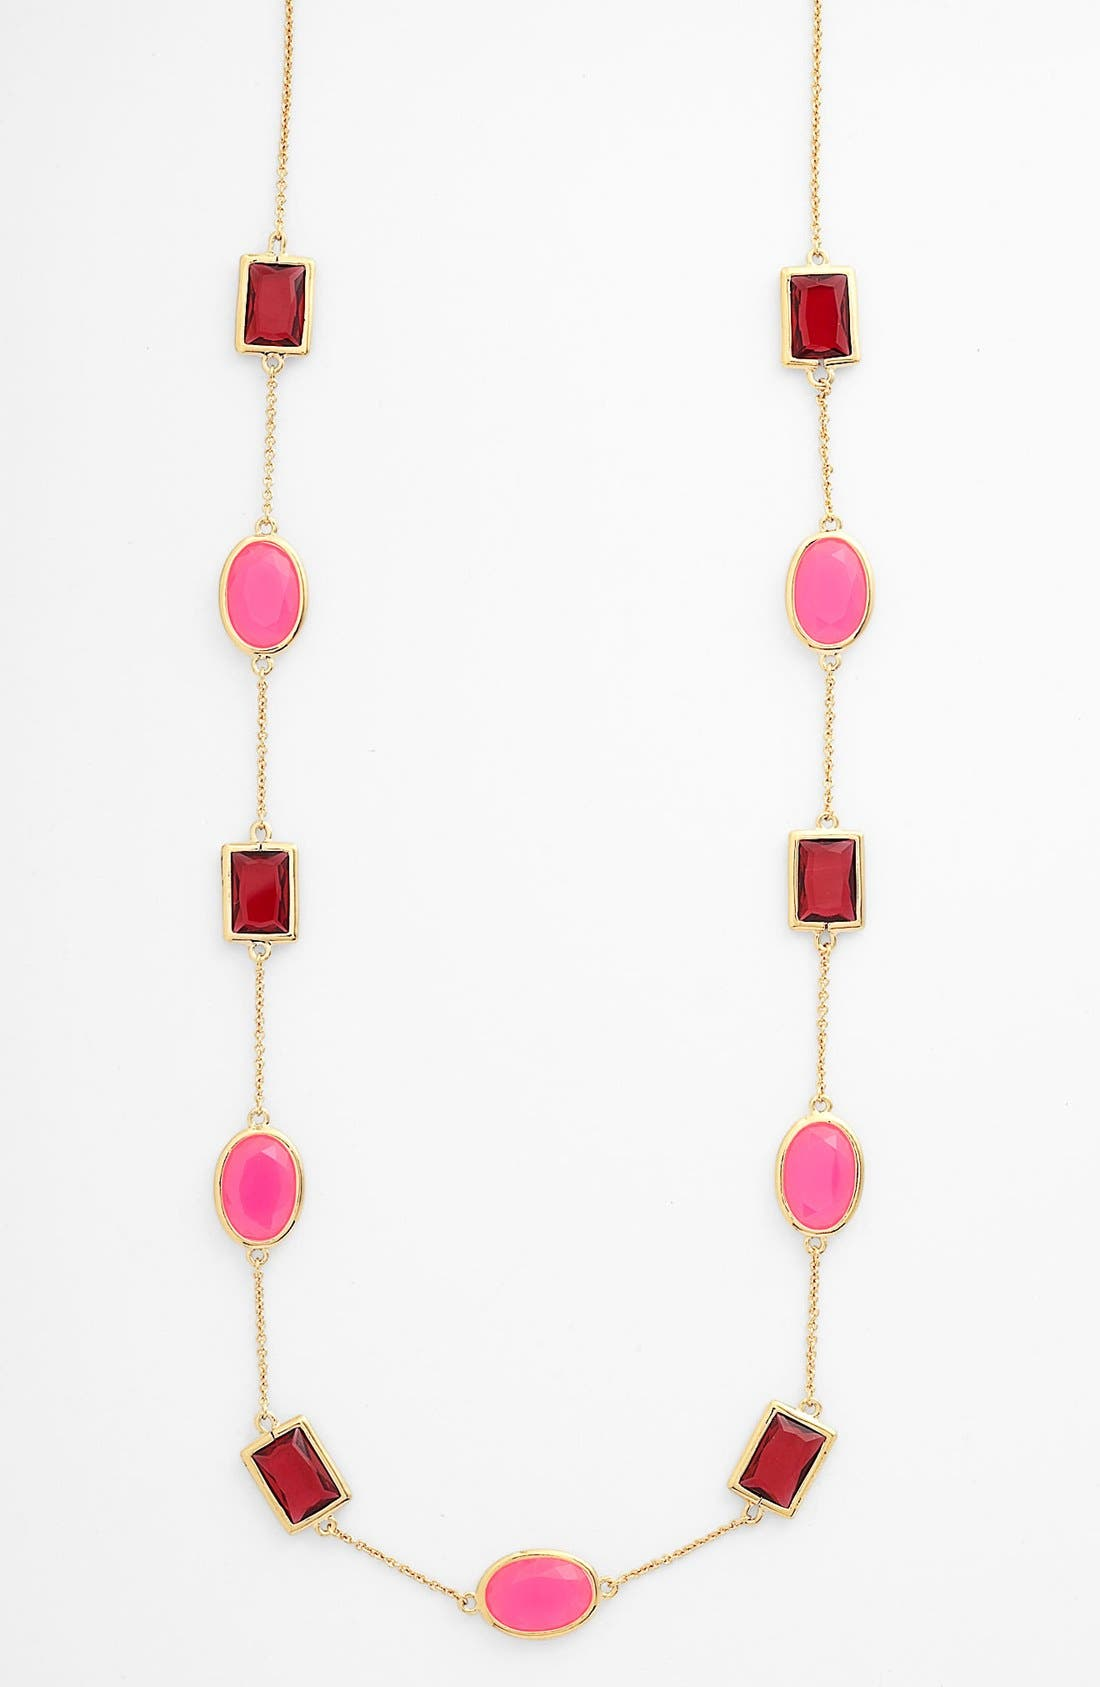 Alternate Image 1 Selected - kate spade new york 'hancock park' long scatter station necklace (Nordstrom Exclusive)